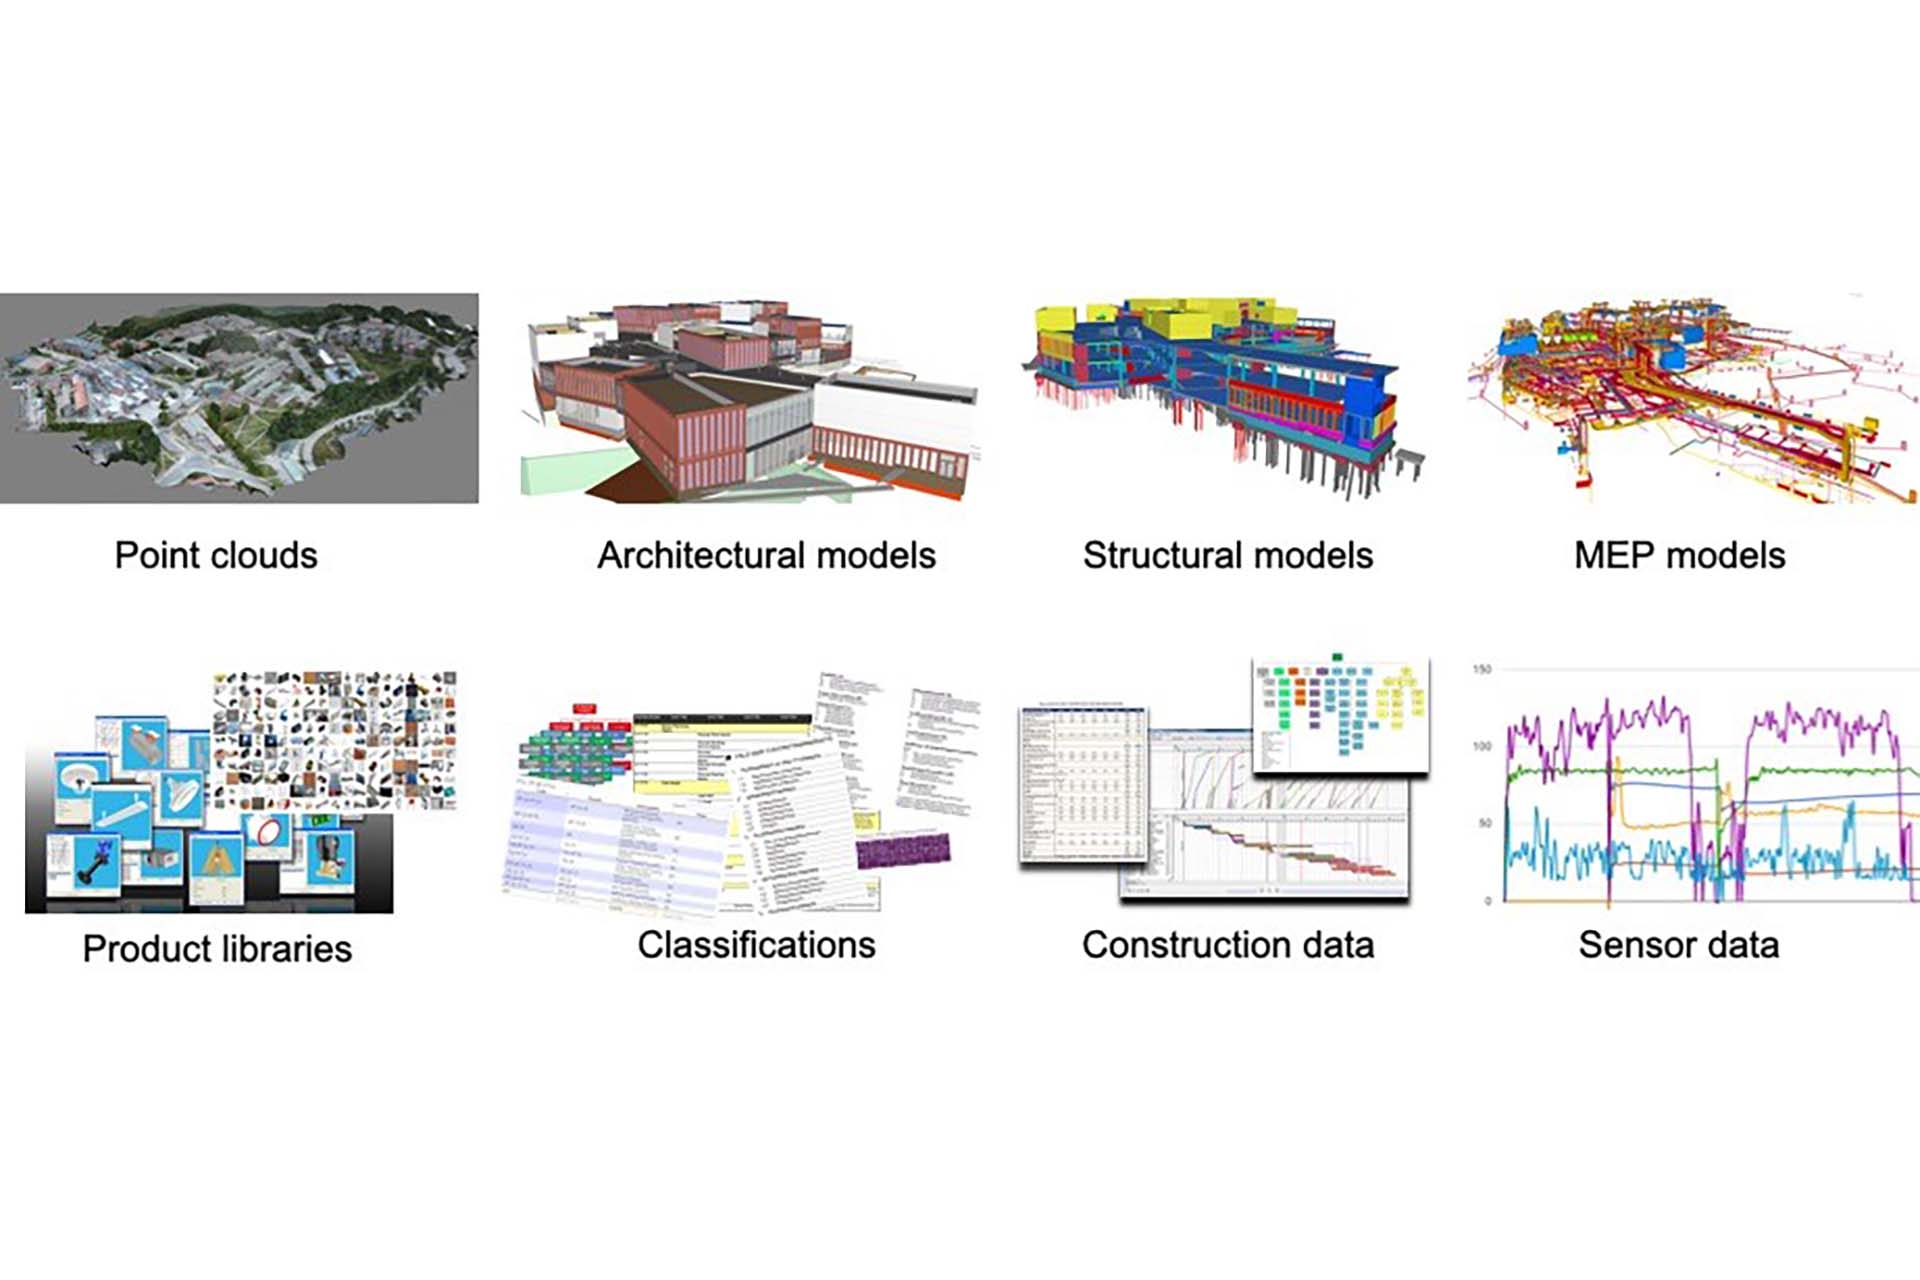 Renovation process and ontologies: our development